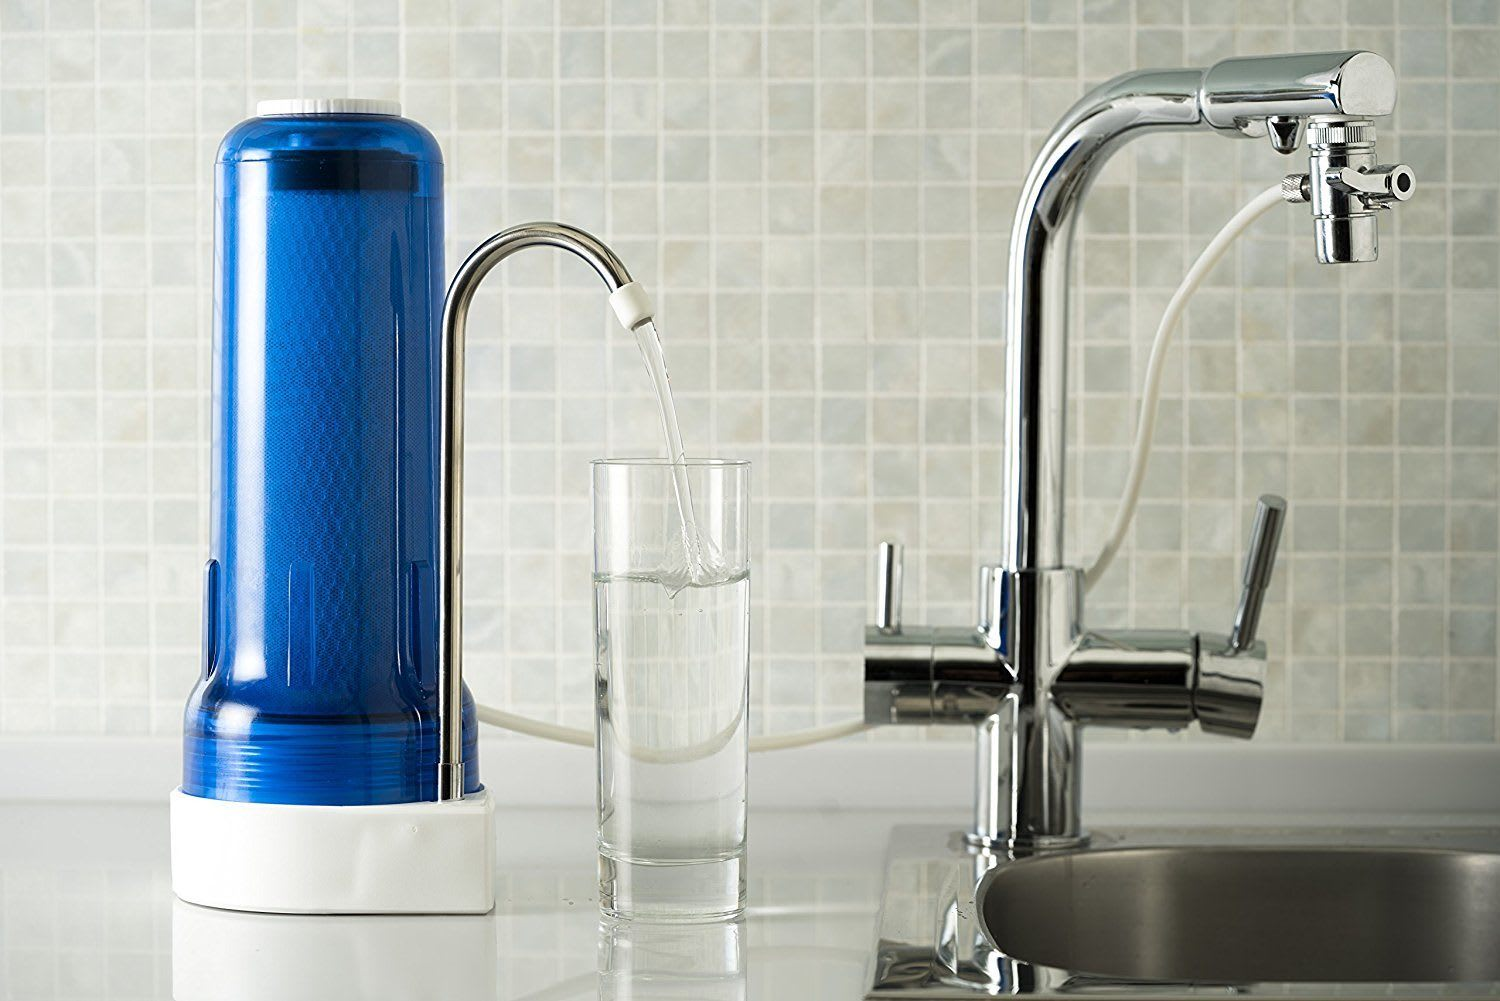 Water Filter Guide: The Common Types of Water Filters to Choose From